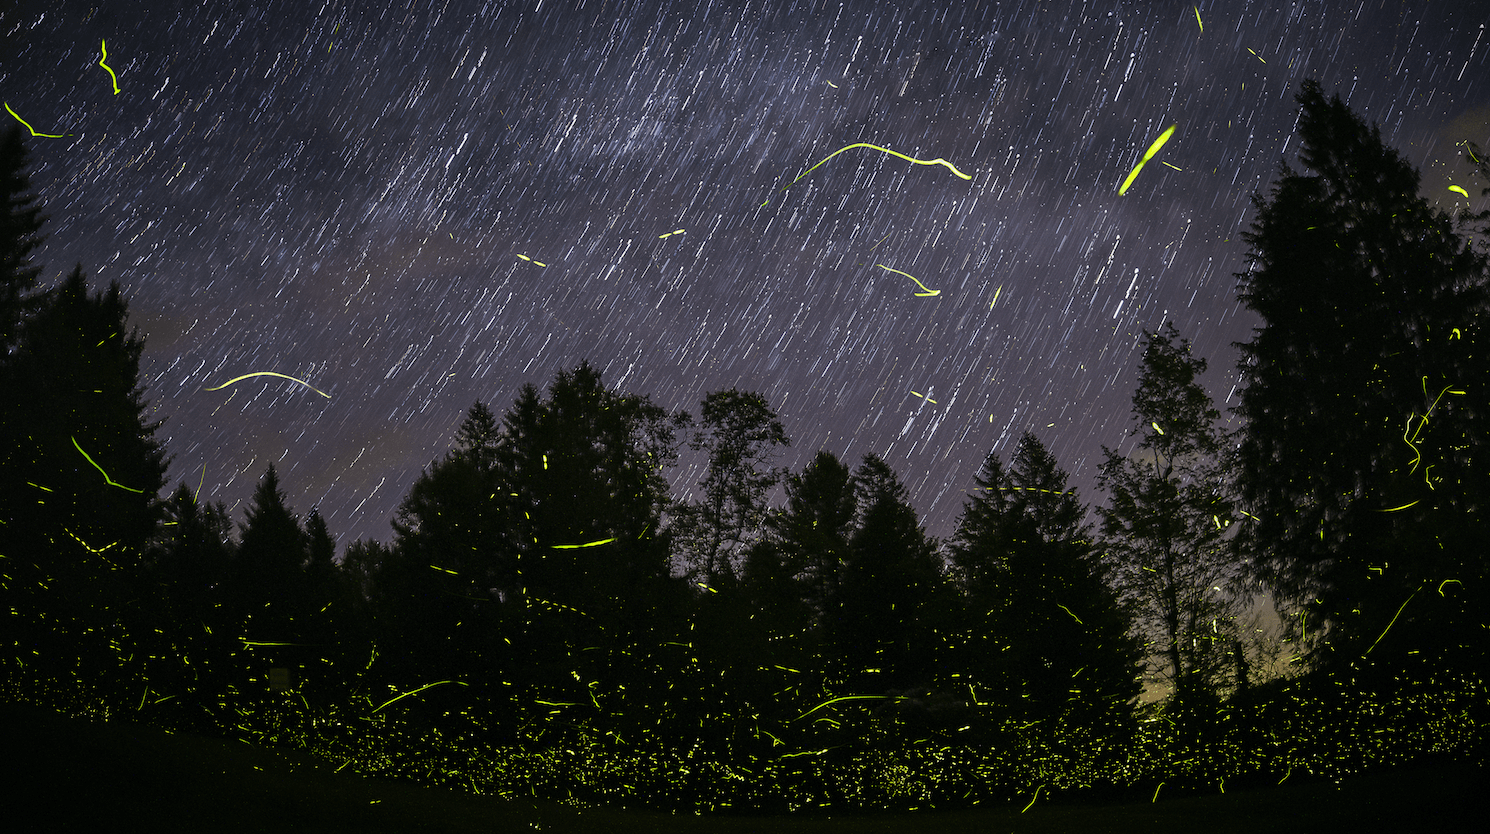 Best Place to See Synchronous Fireflies - View 1